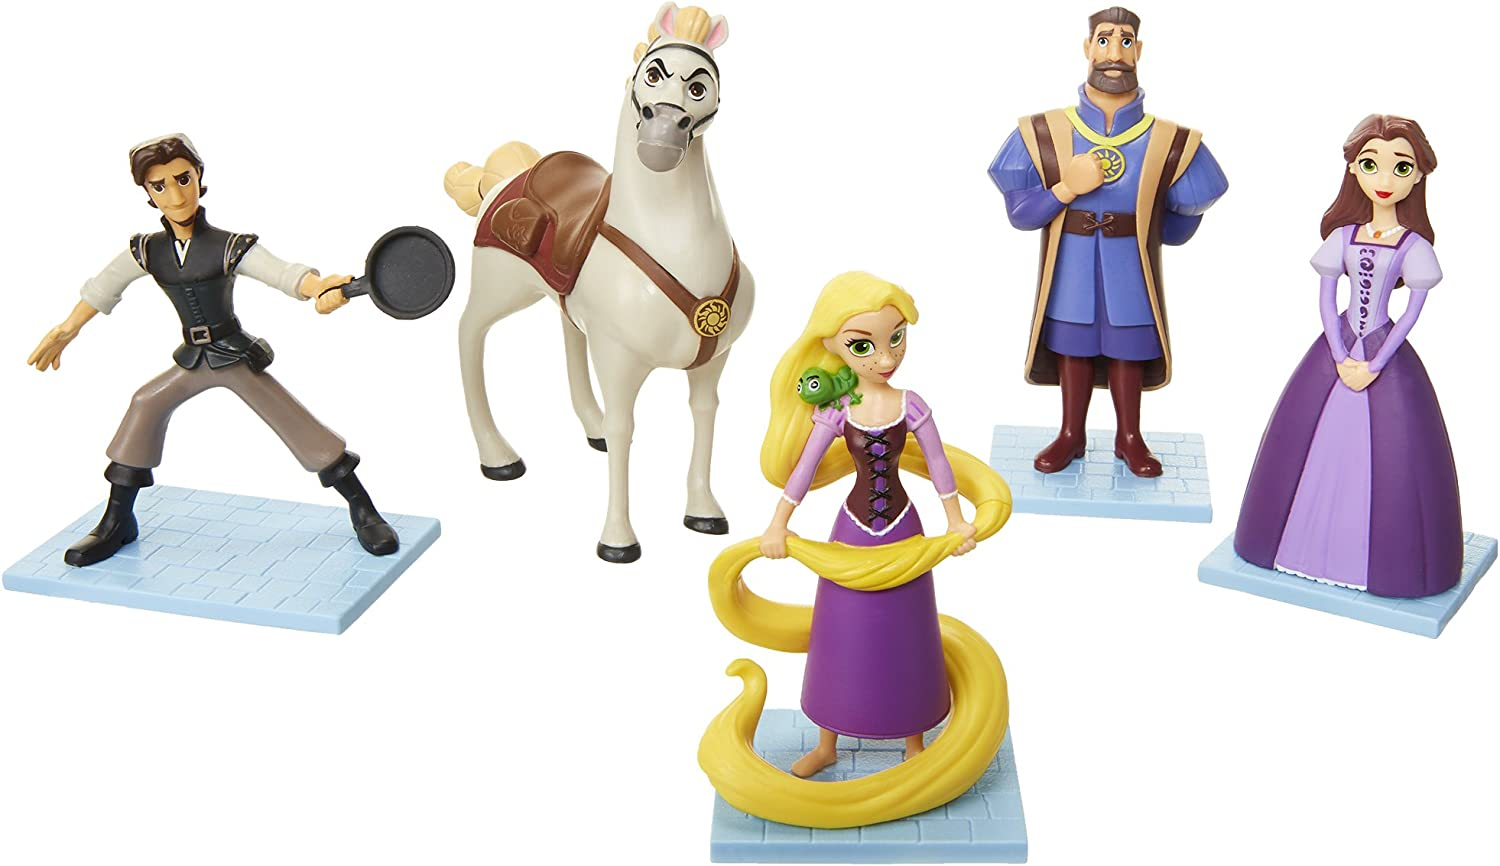 Disney Tangled The Series Figure Set OFFICIAL NEW Collection Toys